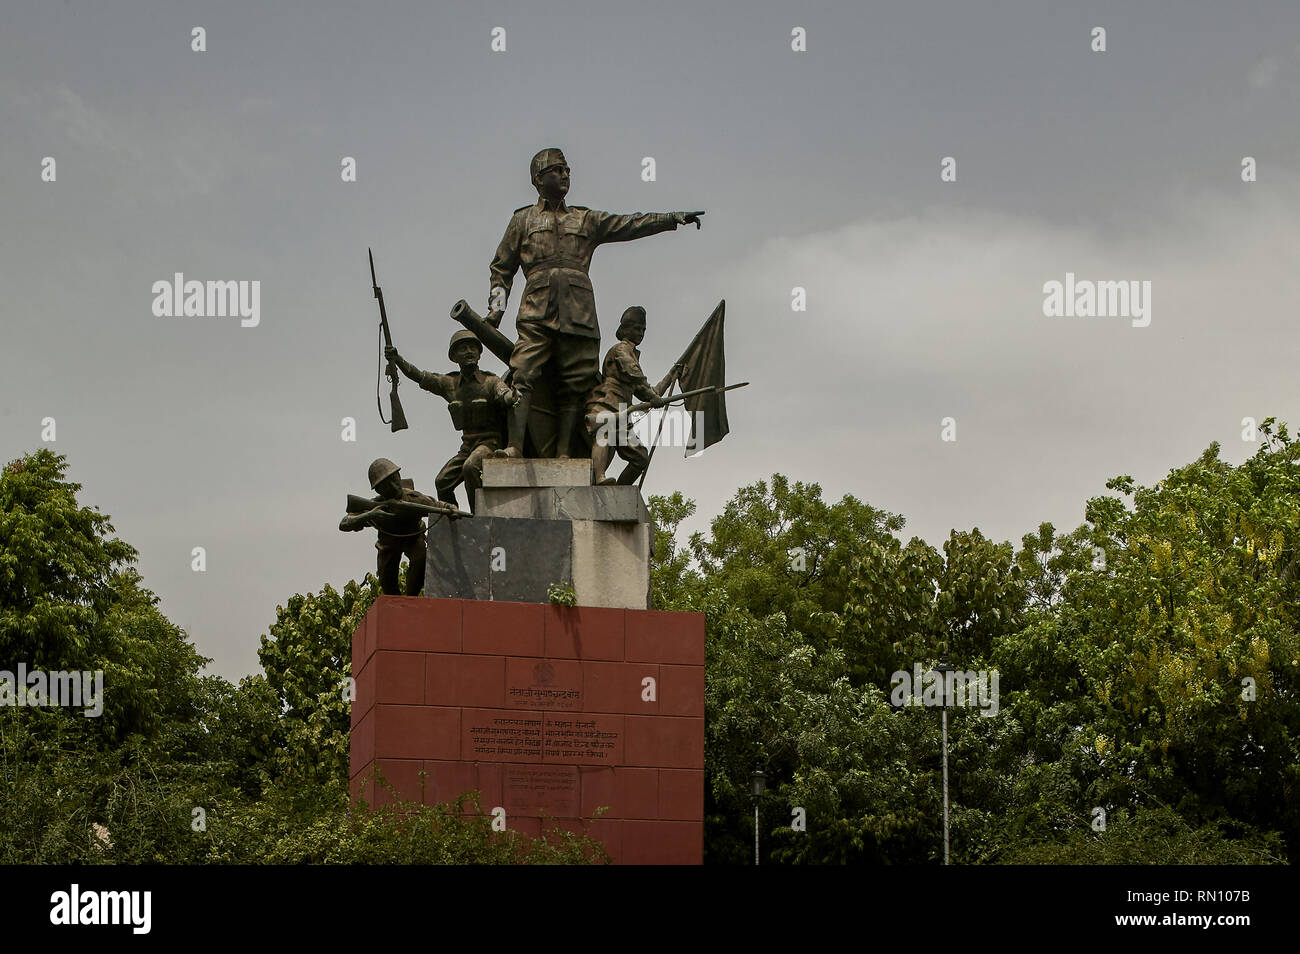 08 Jun 2004 The ensemble of Subhash Chandra Bose and INA soldiers was mounted in park Old Delhi INDIA - Stock Image